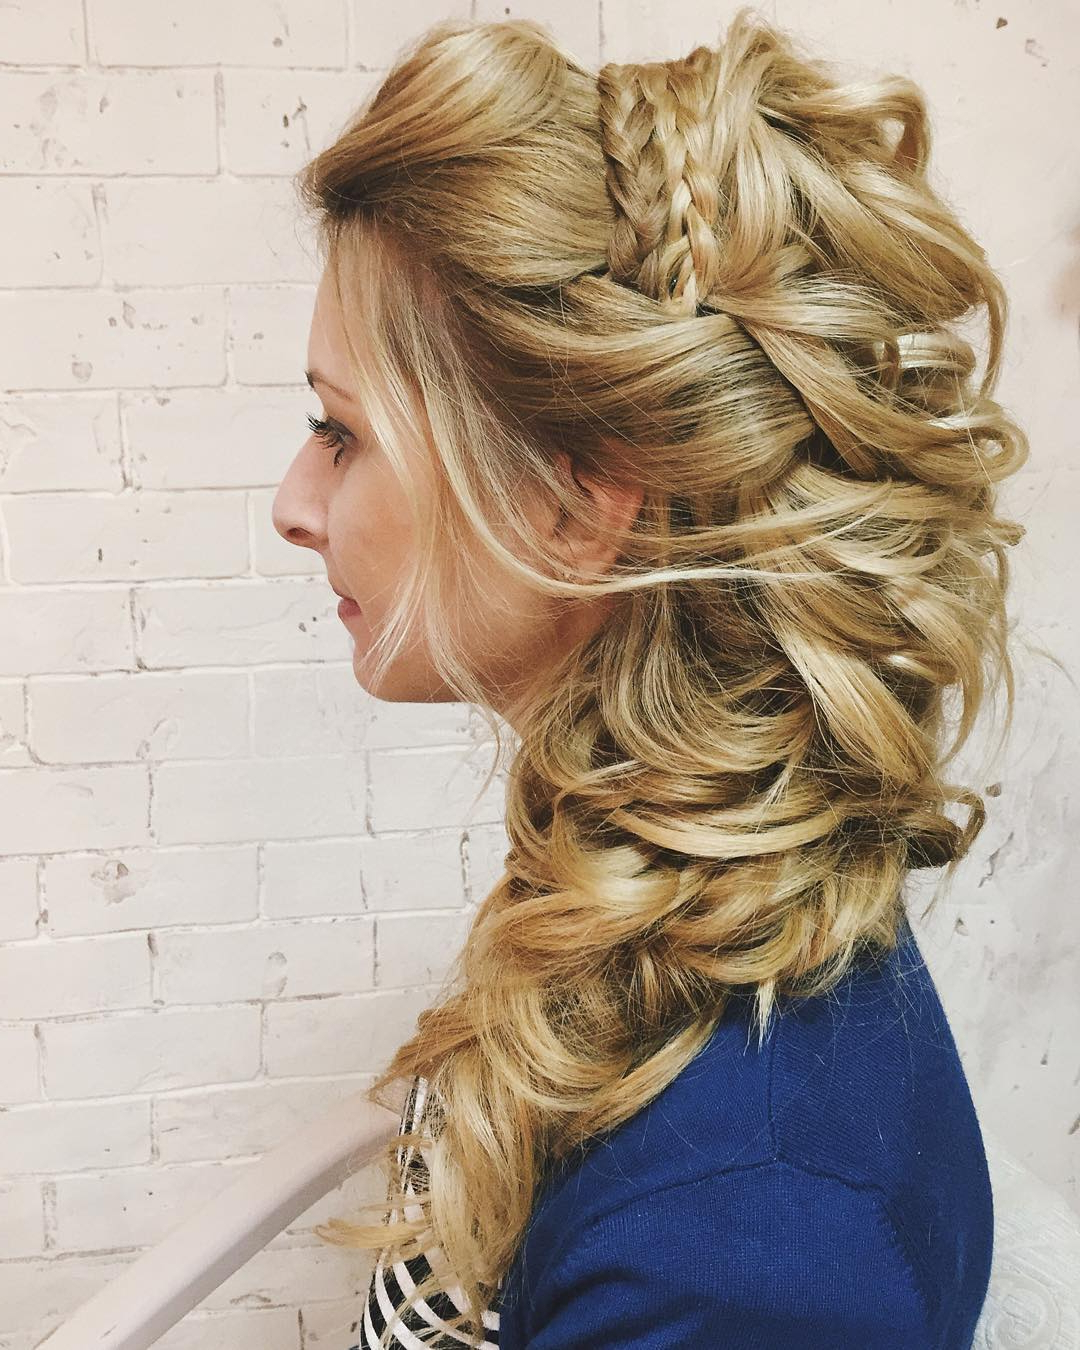 10 Lavish Wedding Hairstyles For Long Hair – Wedding Hairstyle Ideas Within 2017 Embellished Caramel Blonde Chignon Bridal Hairstyles (Gallery 20 of 20)